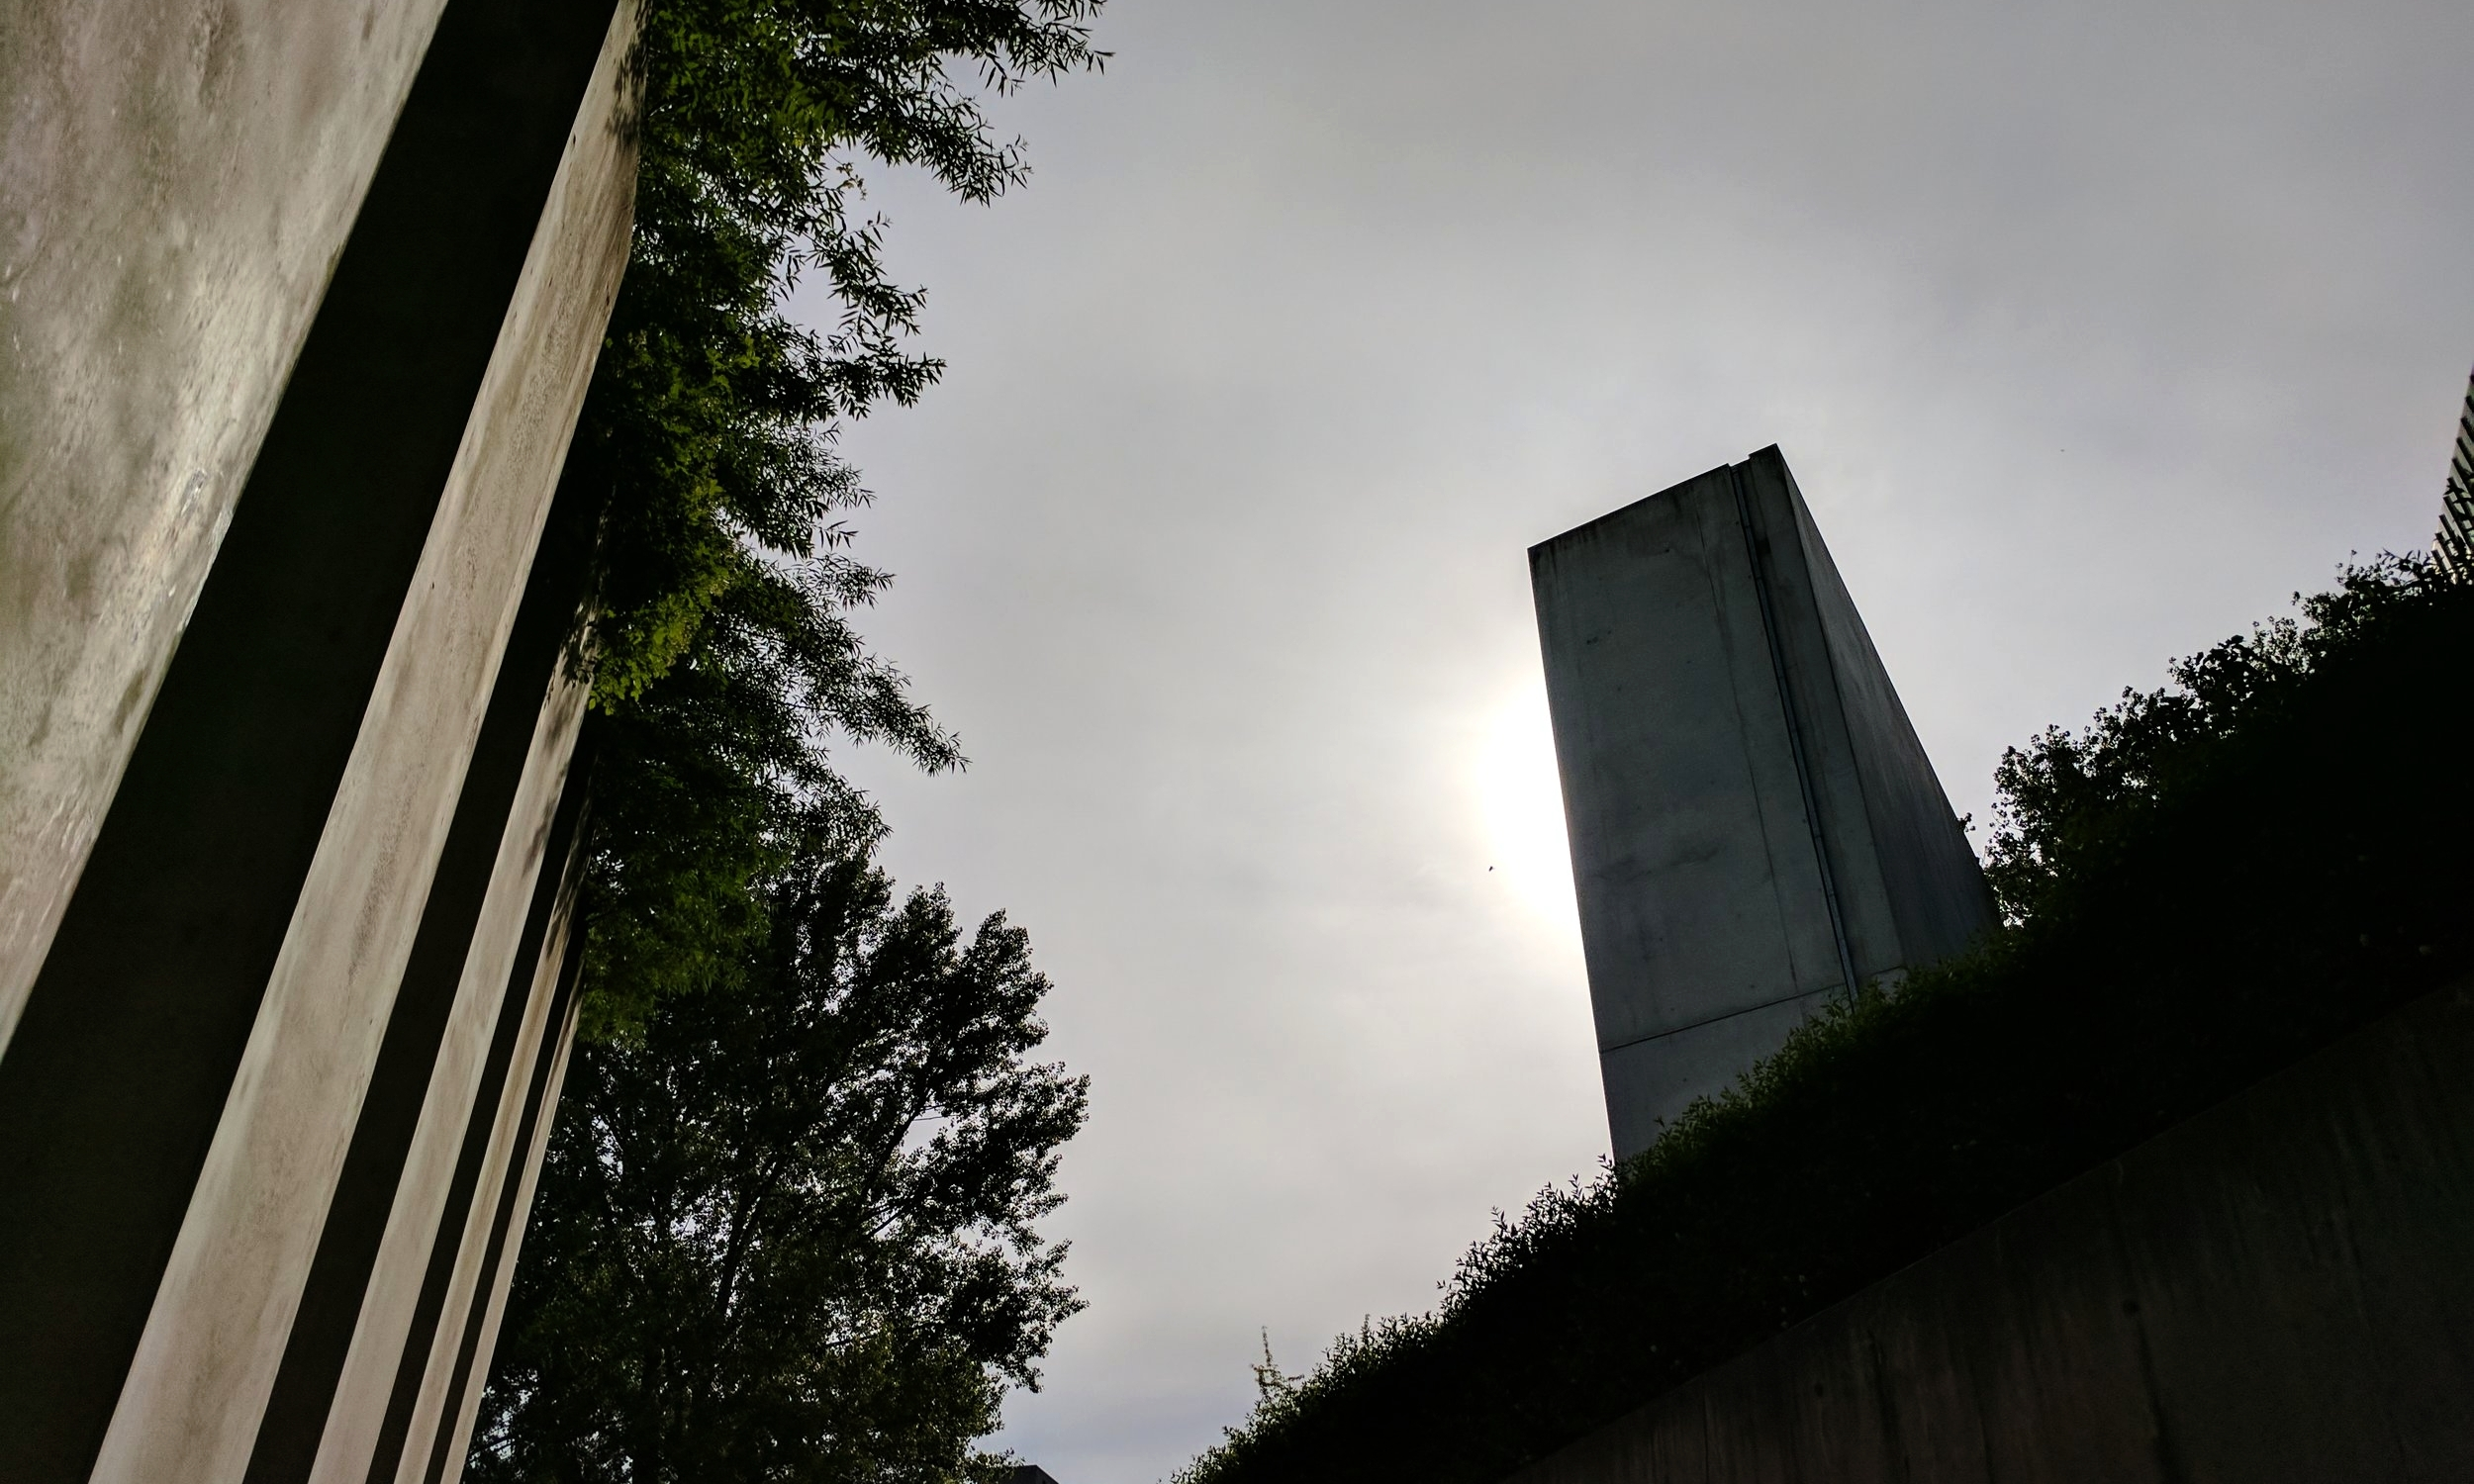 """View of the  Voided Void  (a.k.a. the """"Holocaust Tower"""")from within the  Garden of Exile  at the Jewish Museum Berlin."""